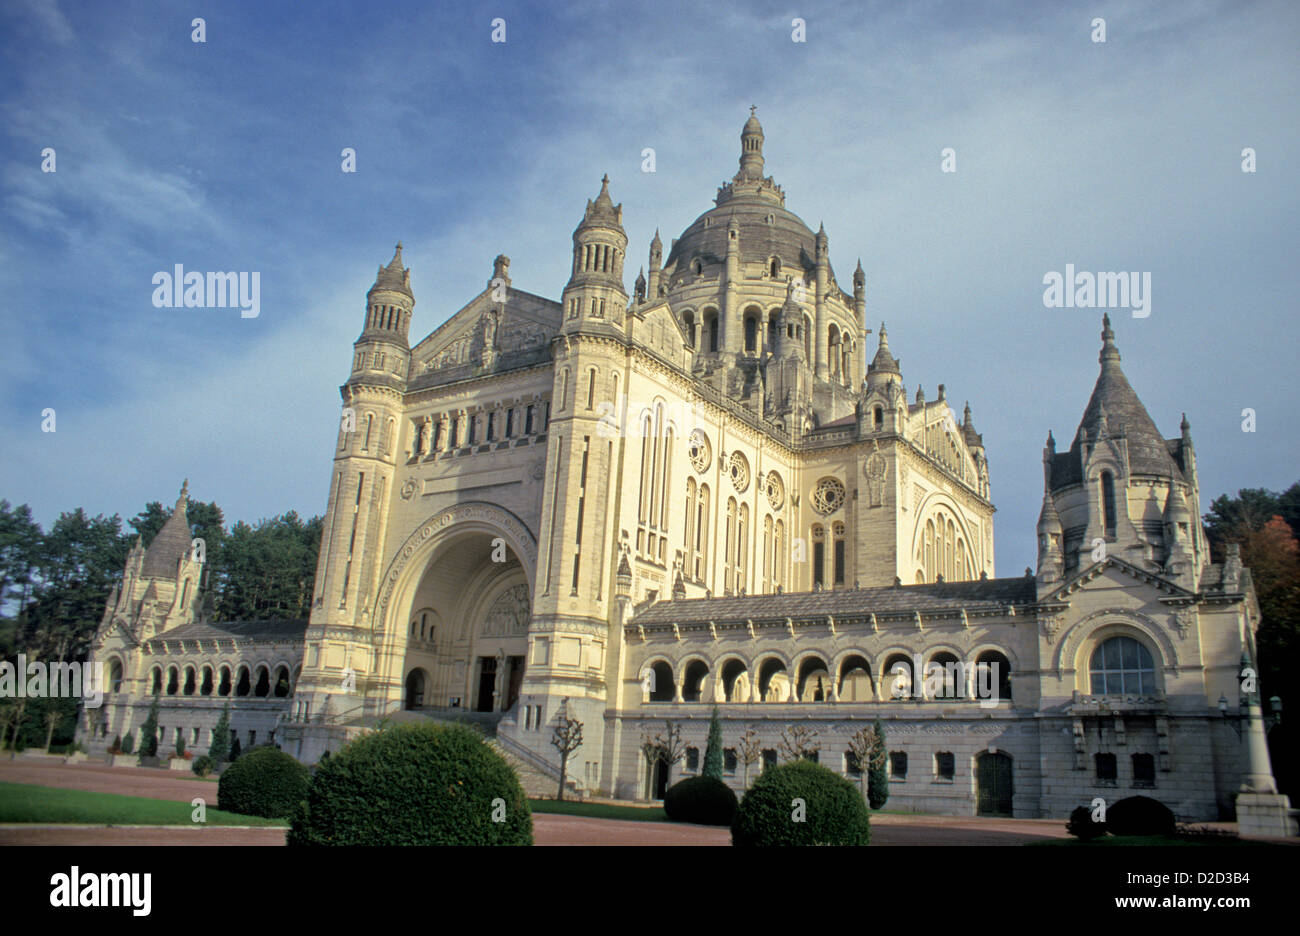 France, Normandy, Ste. Therese Basilica, Lisieux. - Stock Image